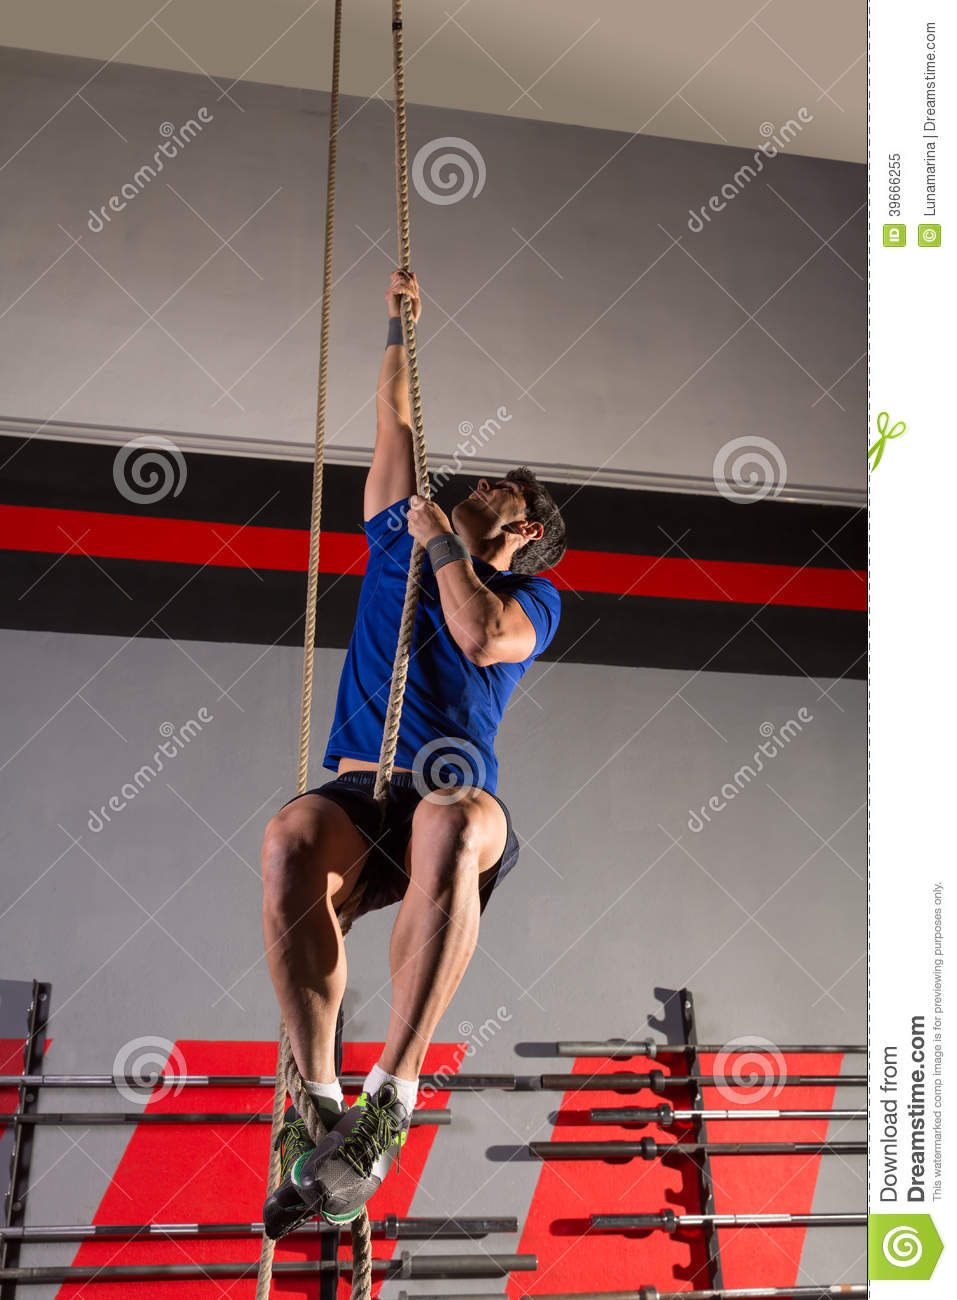 rope climb exercise man workout at gym stock image image of